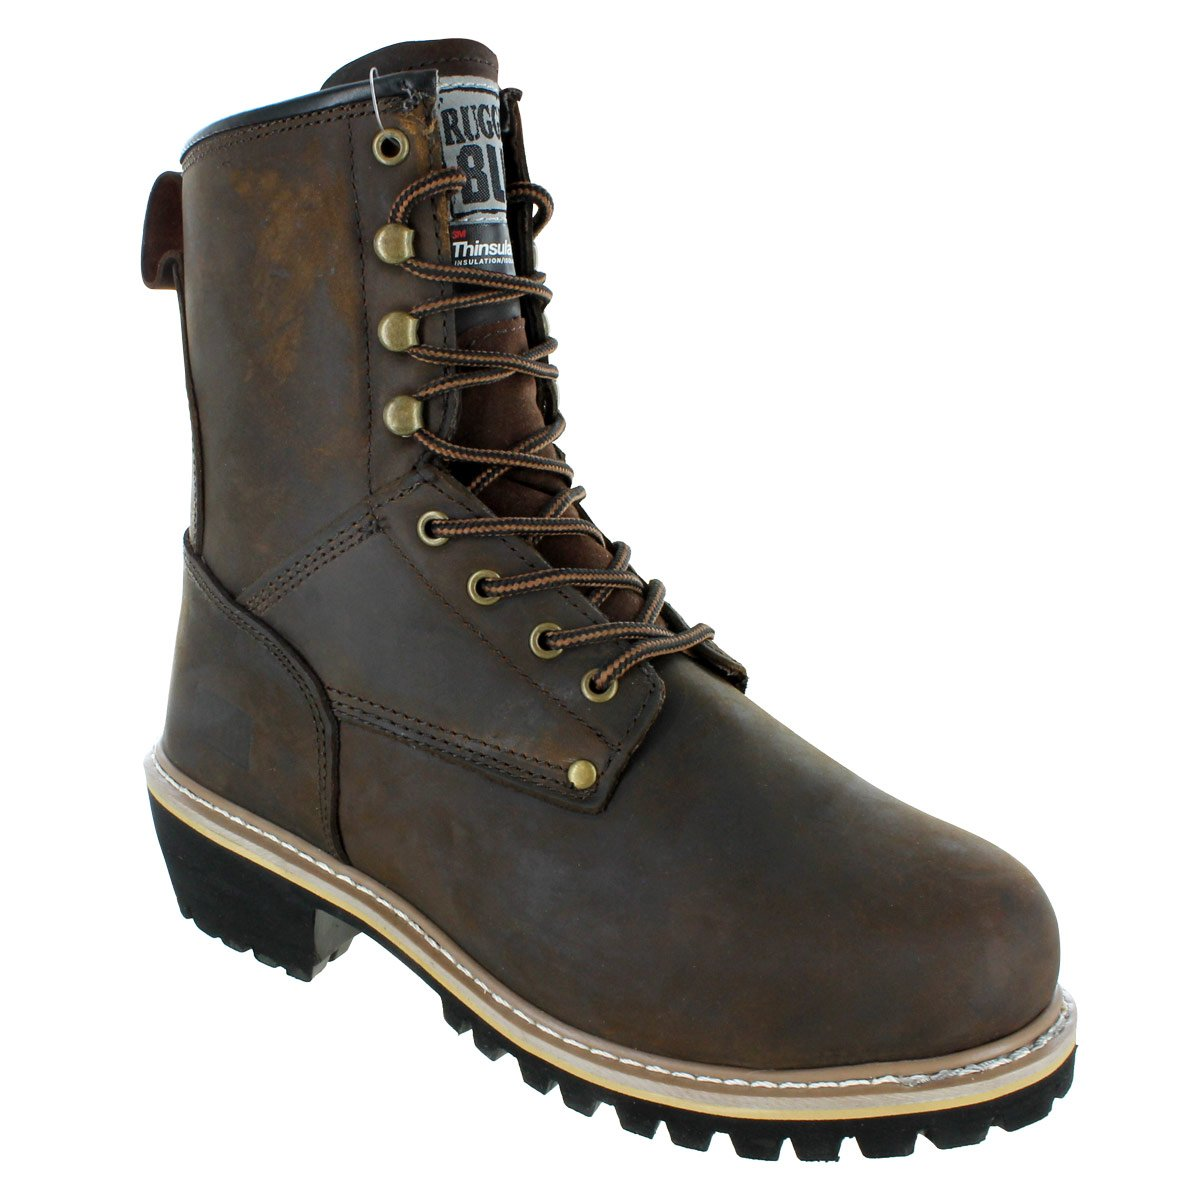 Rugged Blue Pioneer II Insulated Logger Boot Steel Toe 8M Brown